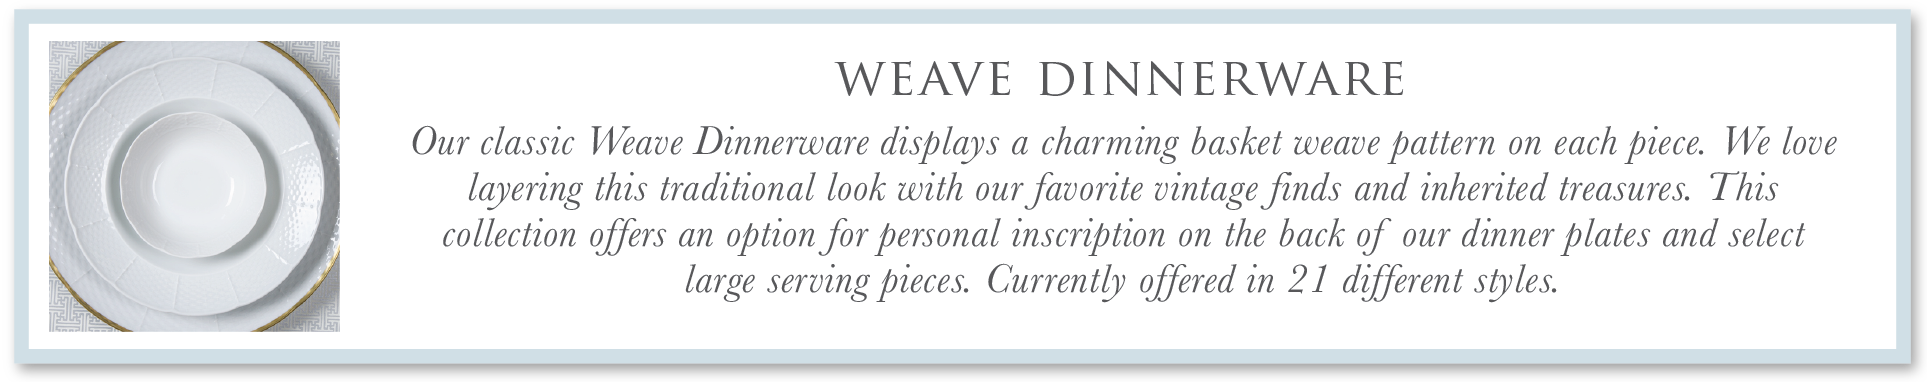 weave-web-banner.png